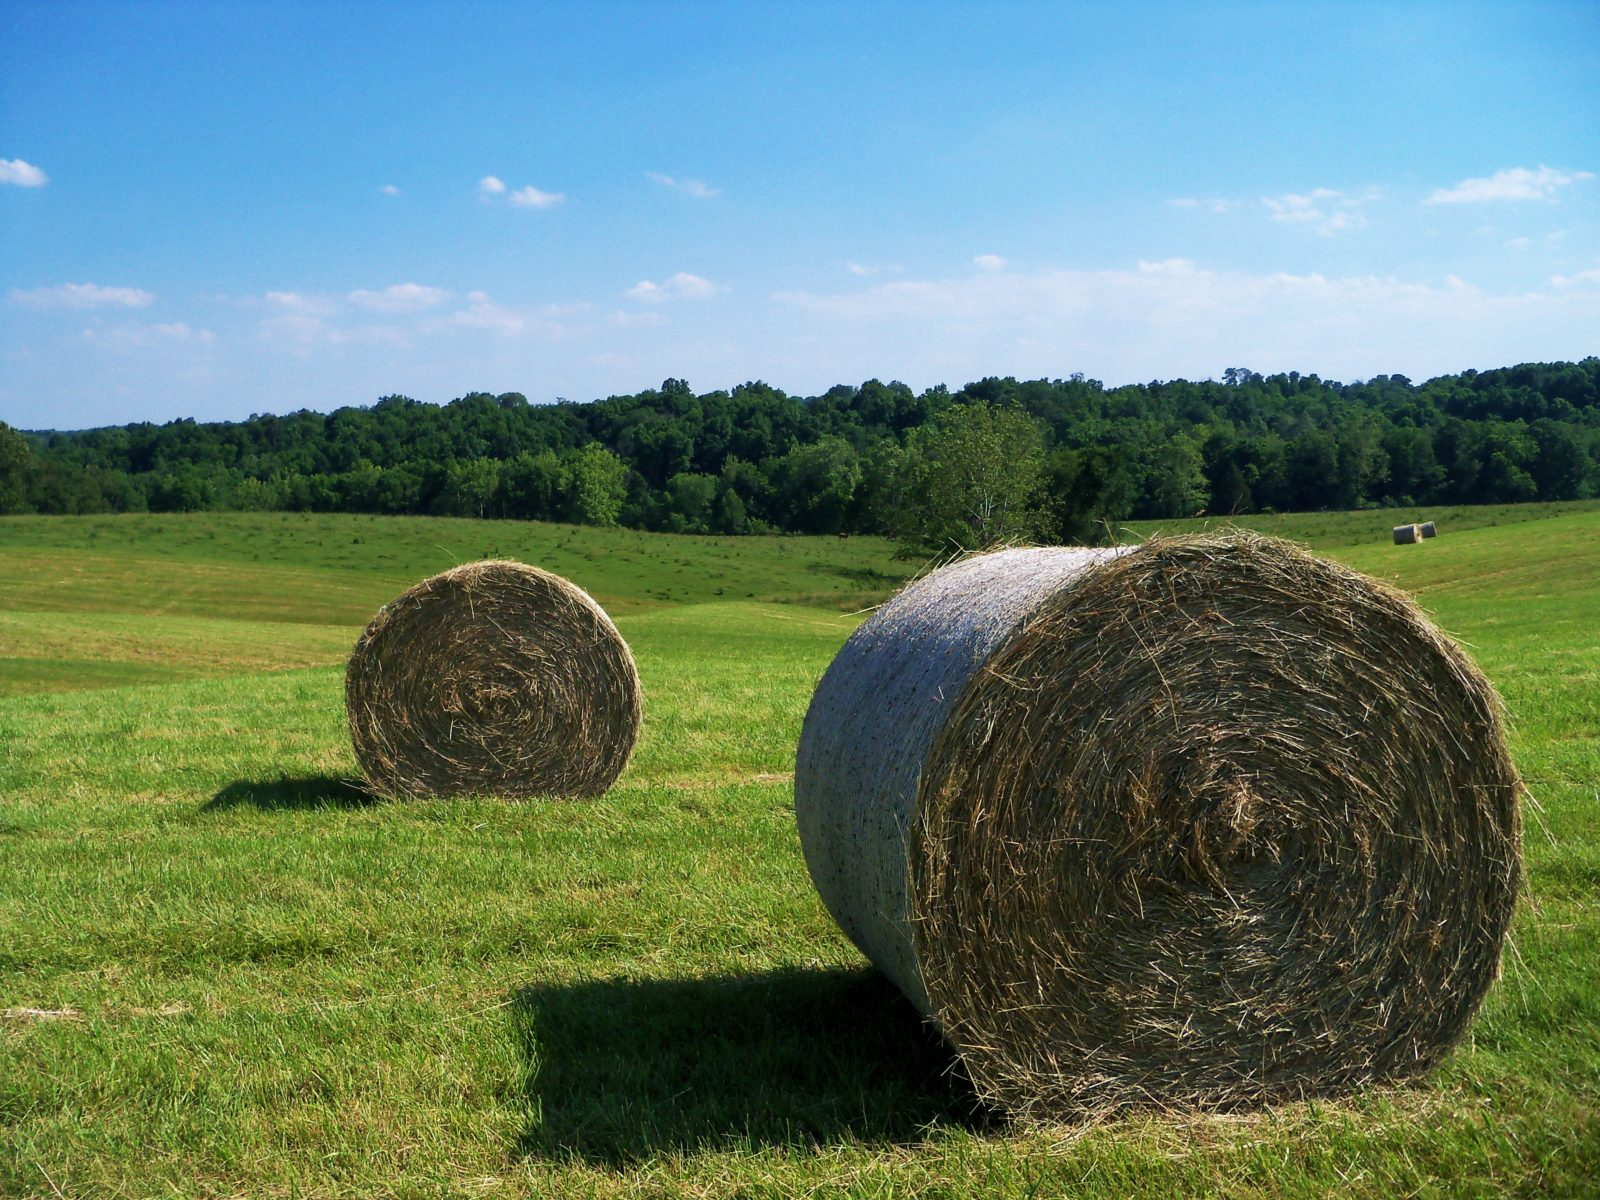 Hay Bales in the Sun